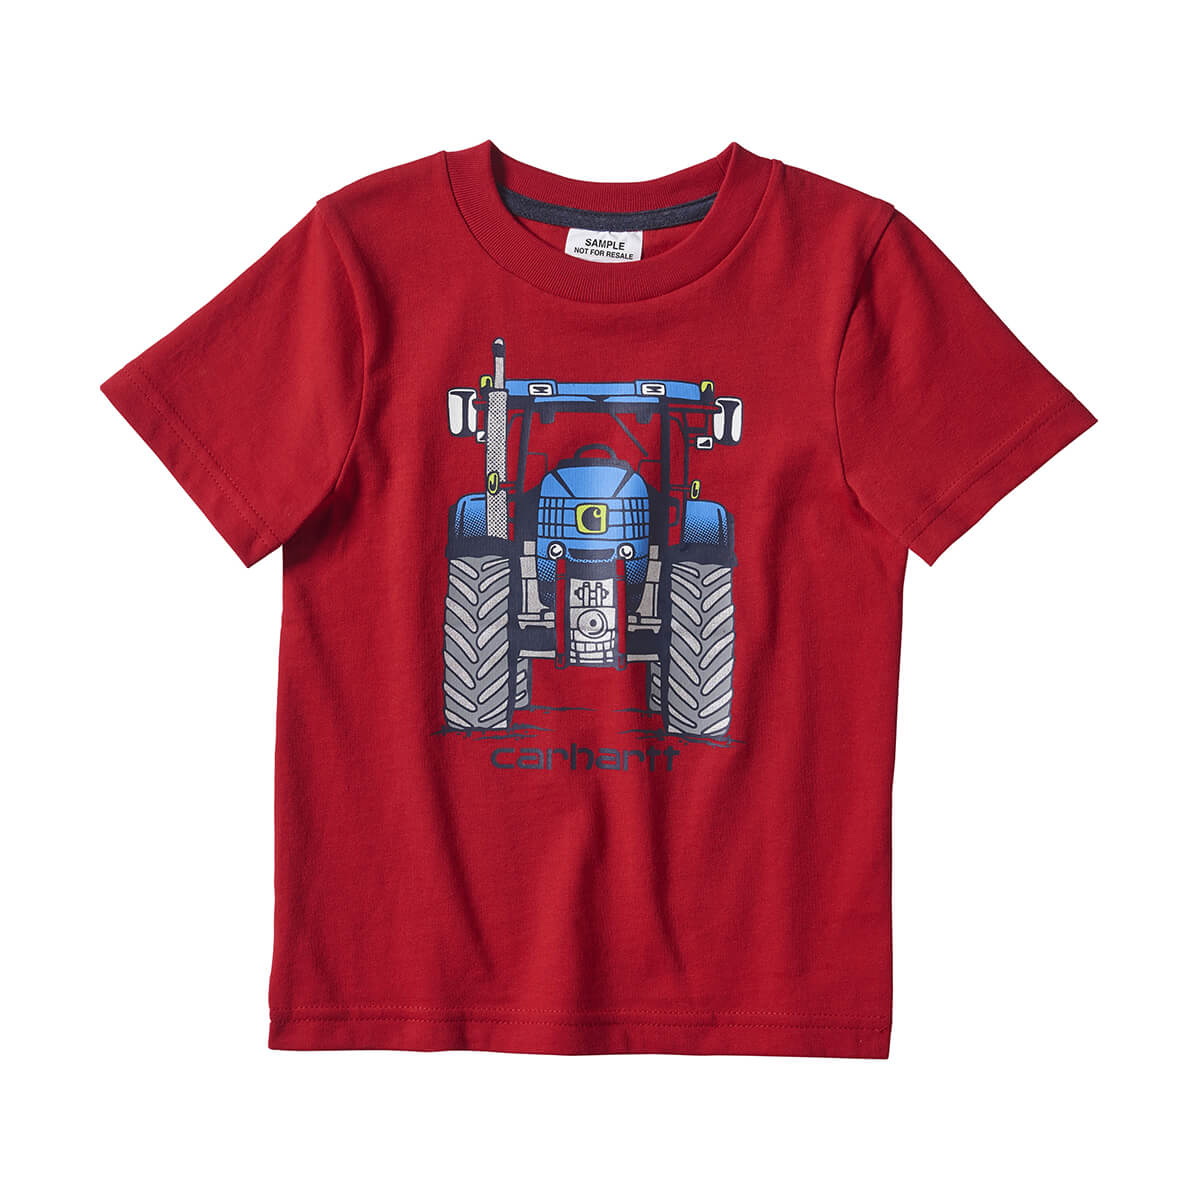 Carhartt Boys Short Sleeve Graphic Tee - Red